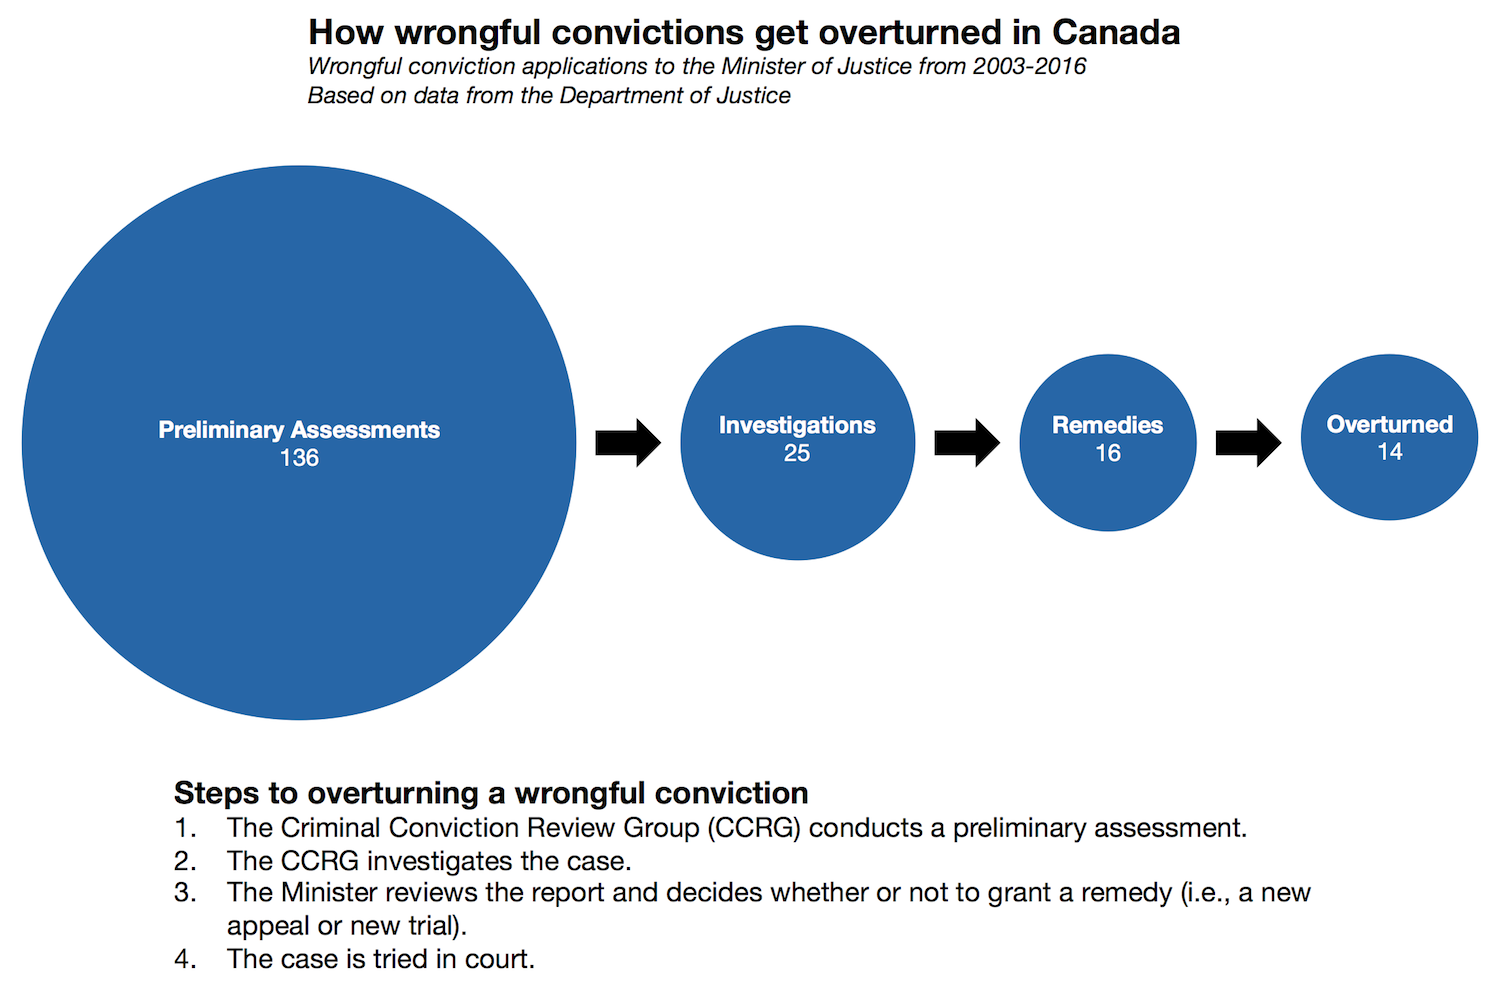 How wrongful convictions get overturned in Canada